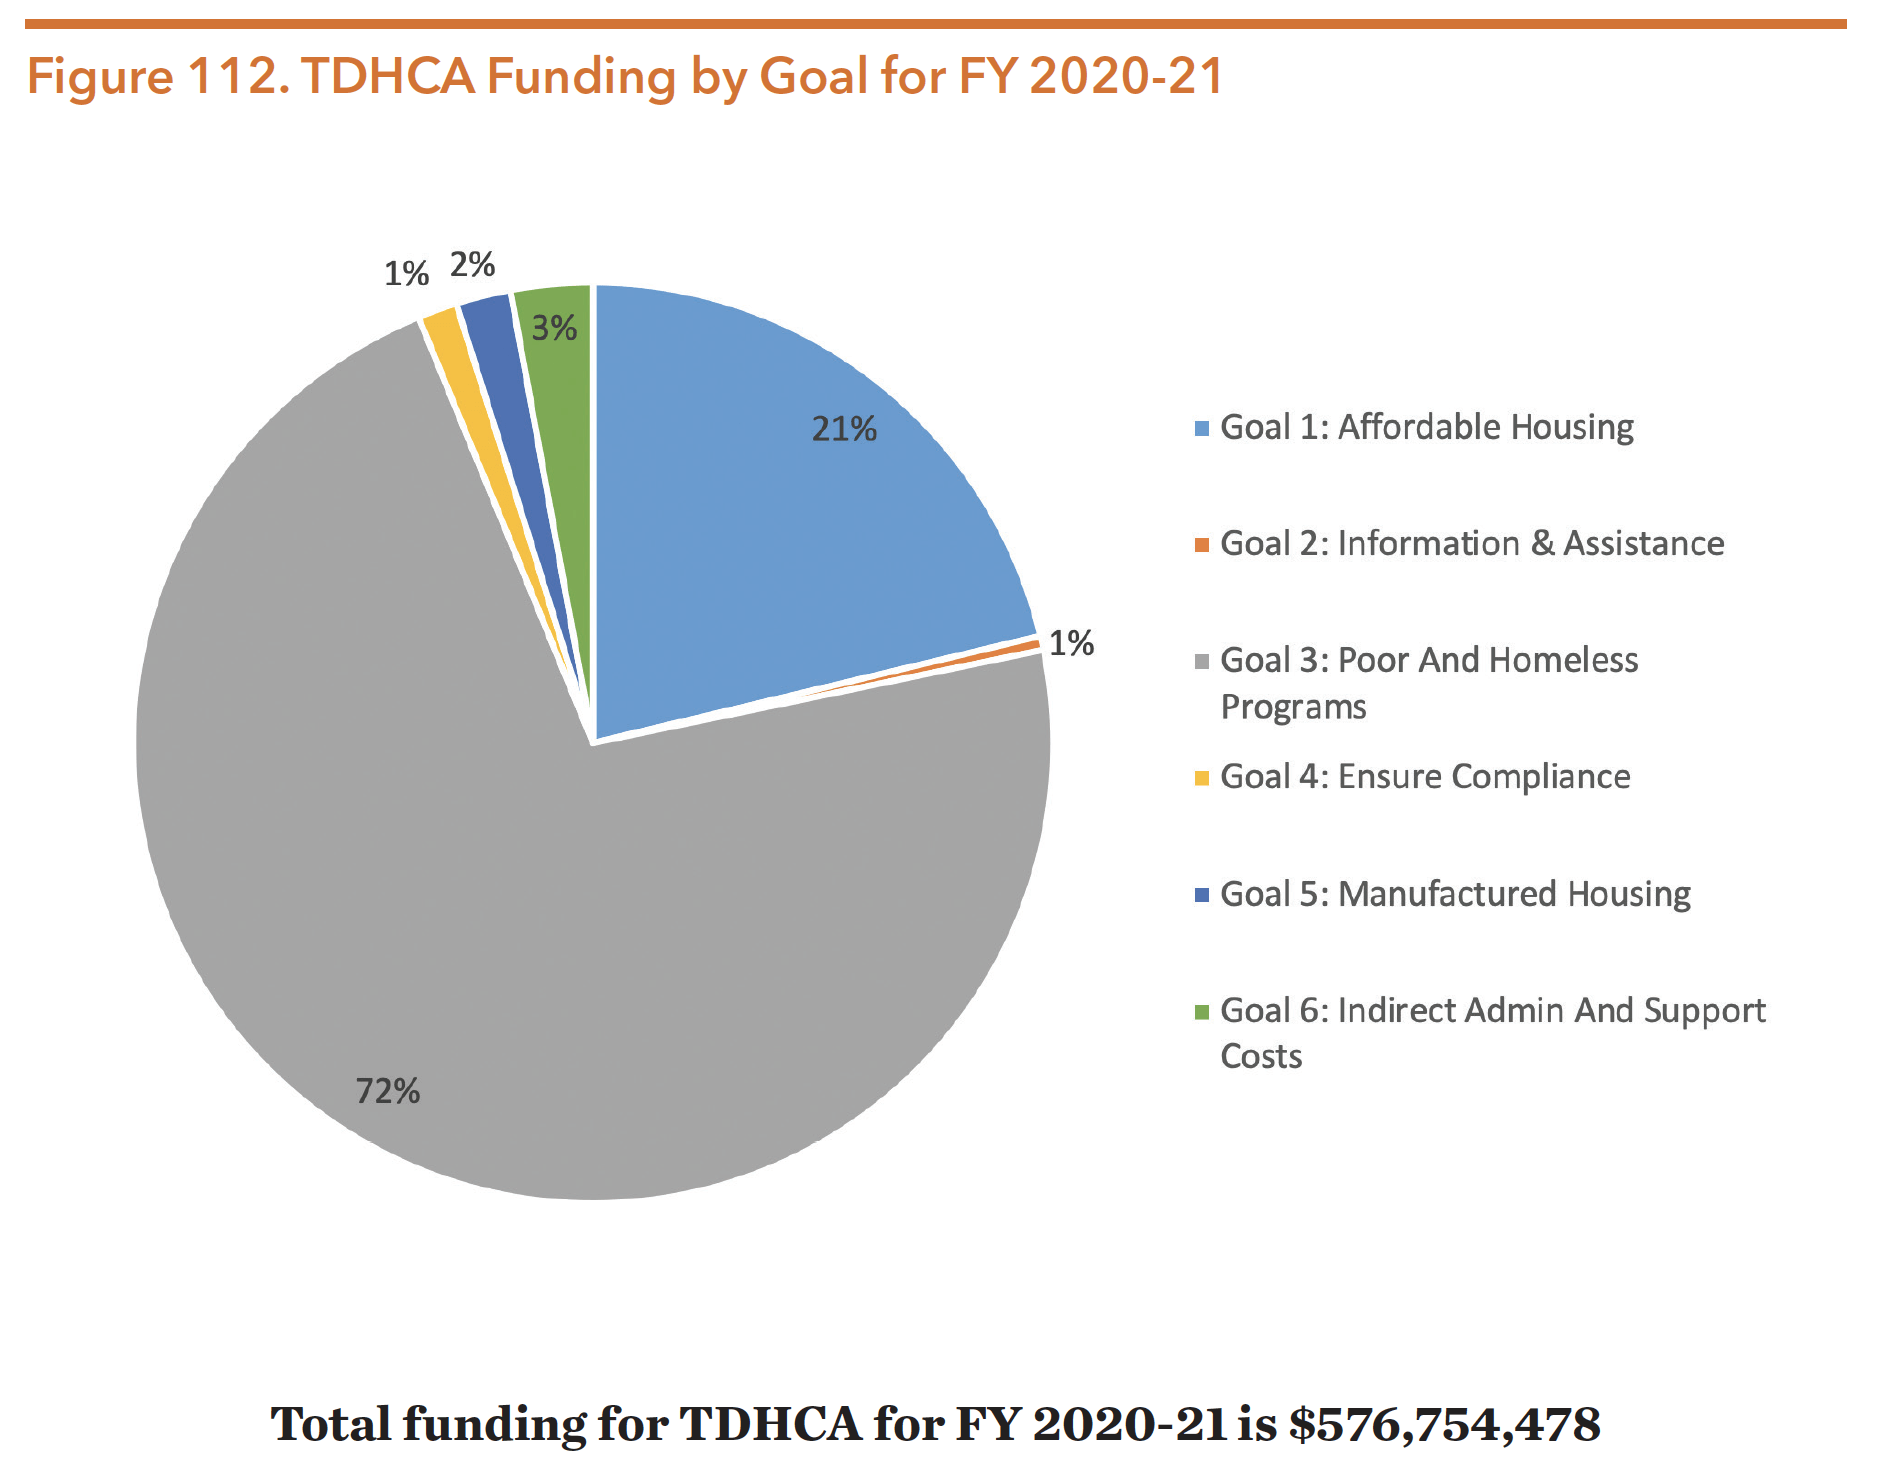 Figure 112. TDHCA Funding by Goal for FY 2020-21